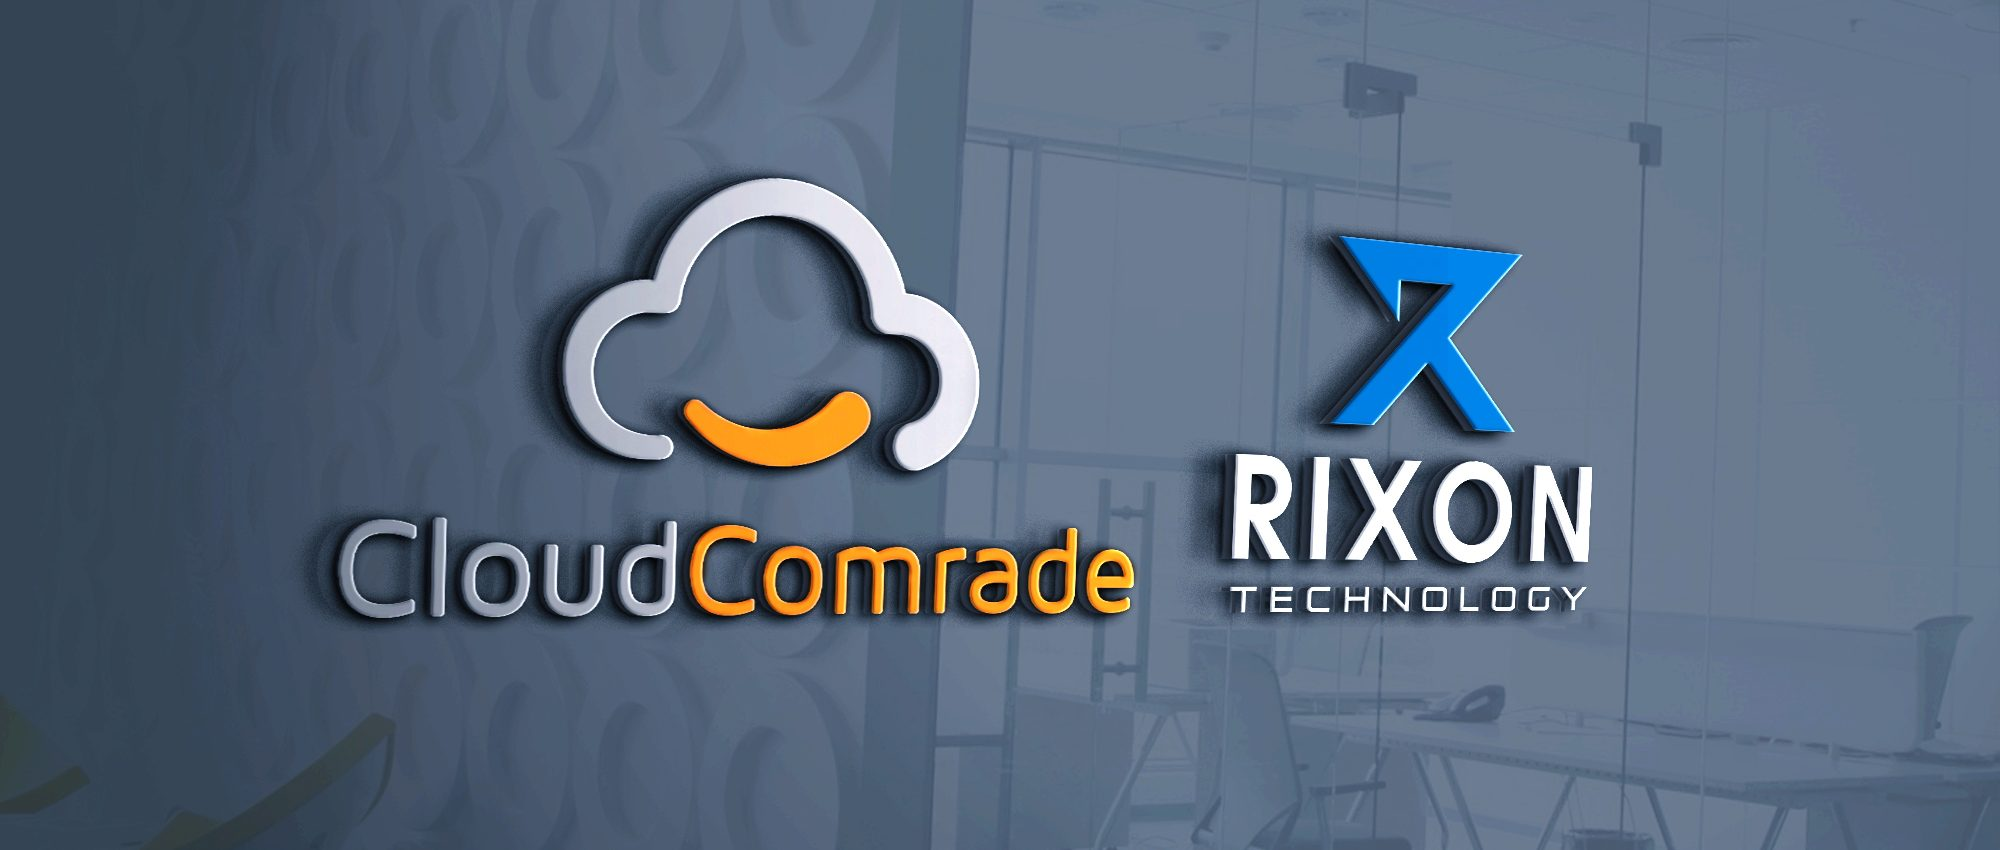 Rixon Technology Partners With Cloud Comrade To Bring Security Services To APAC